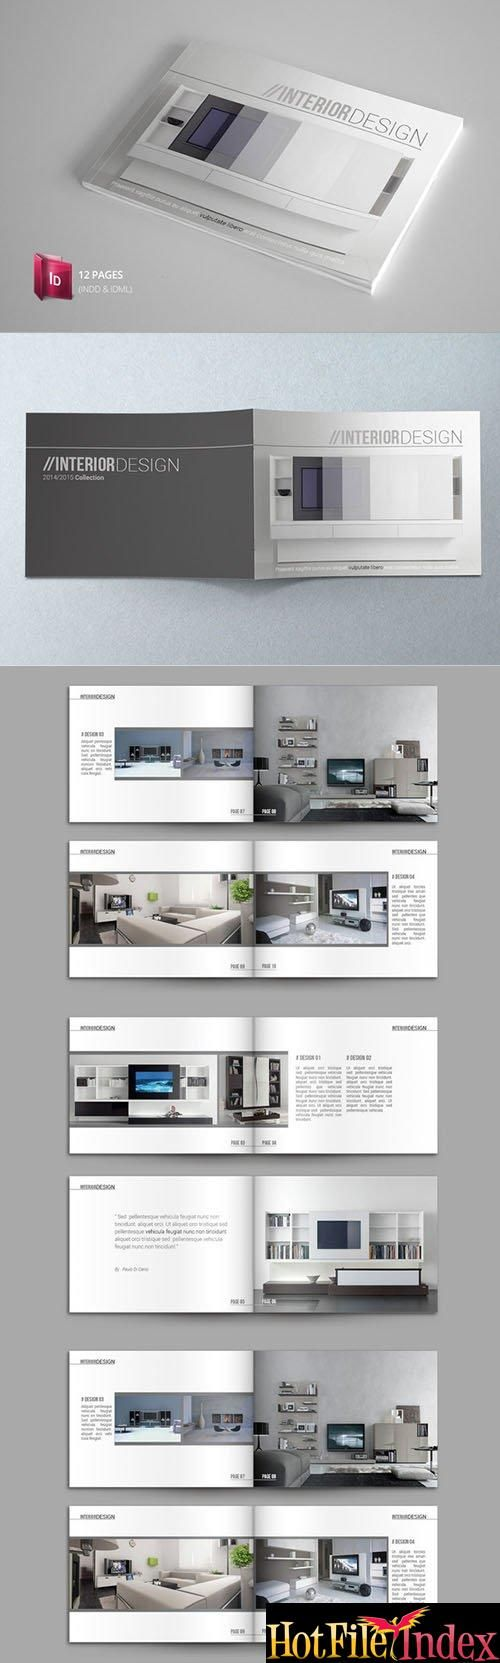 Indesign Catalogue Template From HotFileIndex